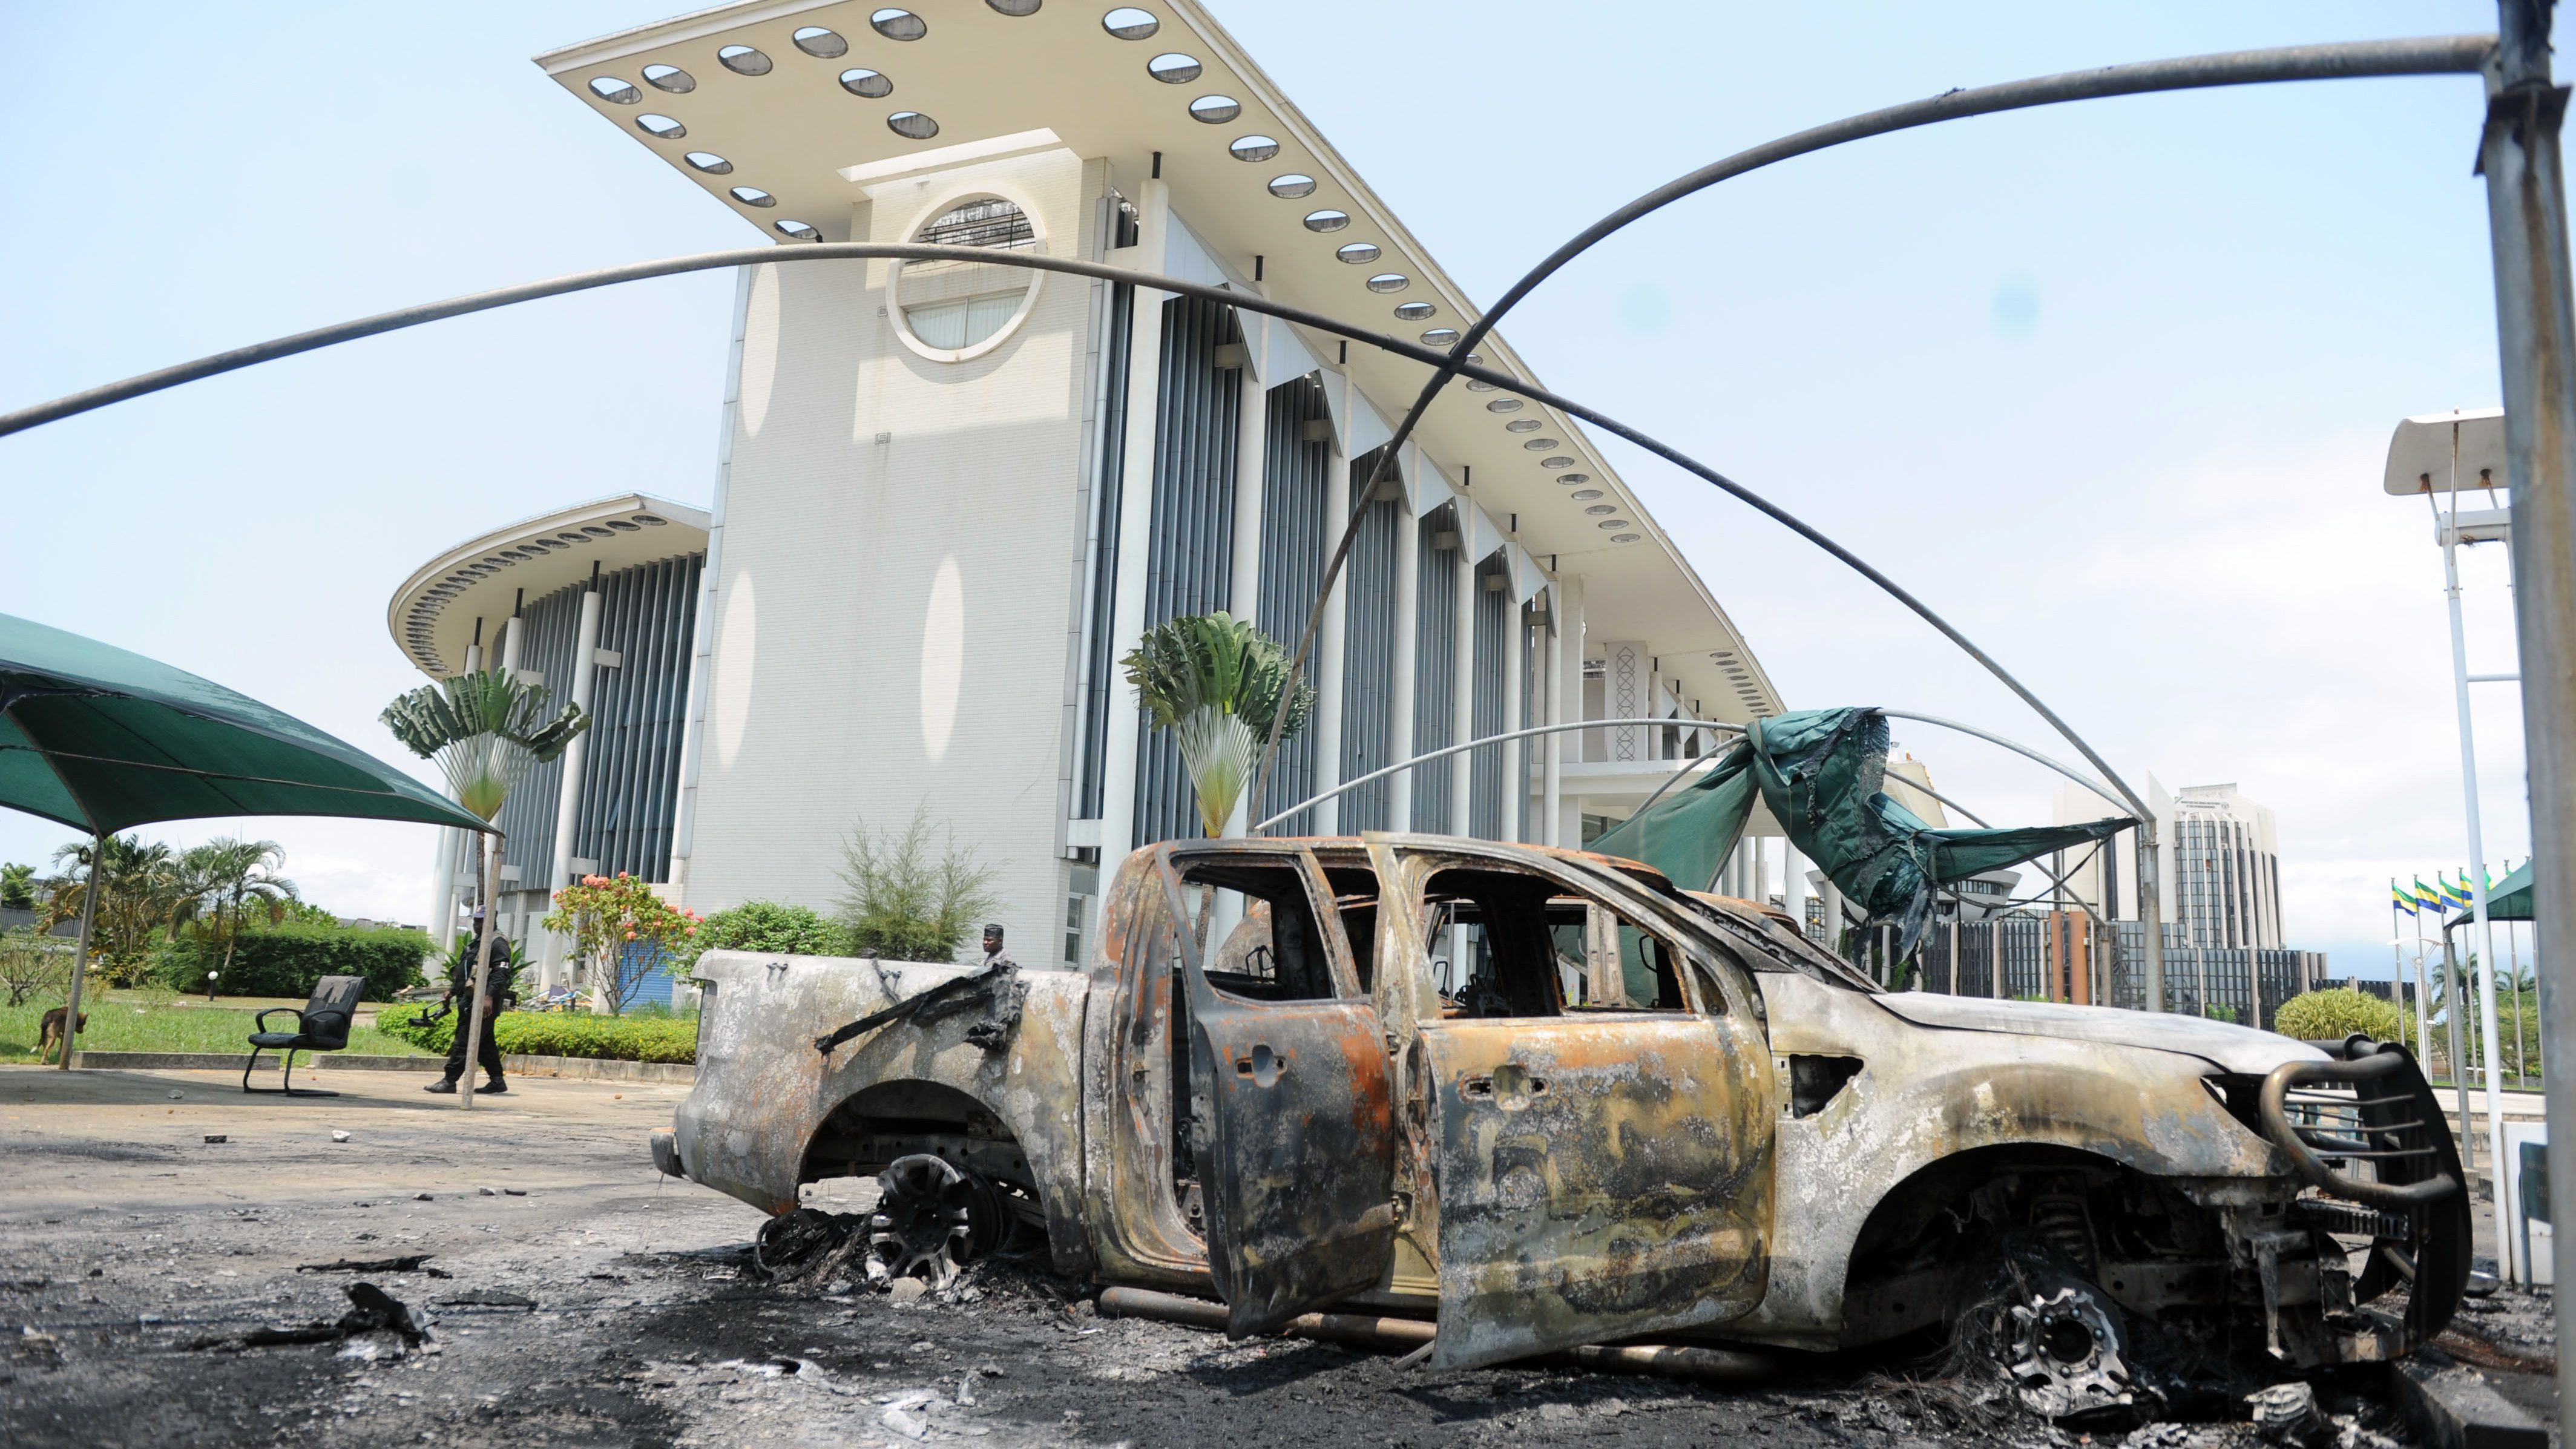 Burnt out cars are seen outside a government building, following an election protest in Libreville, Gabon, Thursday Sept. 1, 2016. Gabon's newly re-elected president sought to assert authority Thursday as the presidential guard attacked the opposition candidate's party headquarters overnight, killing at least one person and injuring more than a dozen amid fiery protests that have seen hundreds detained and the internet blocked.